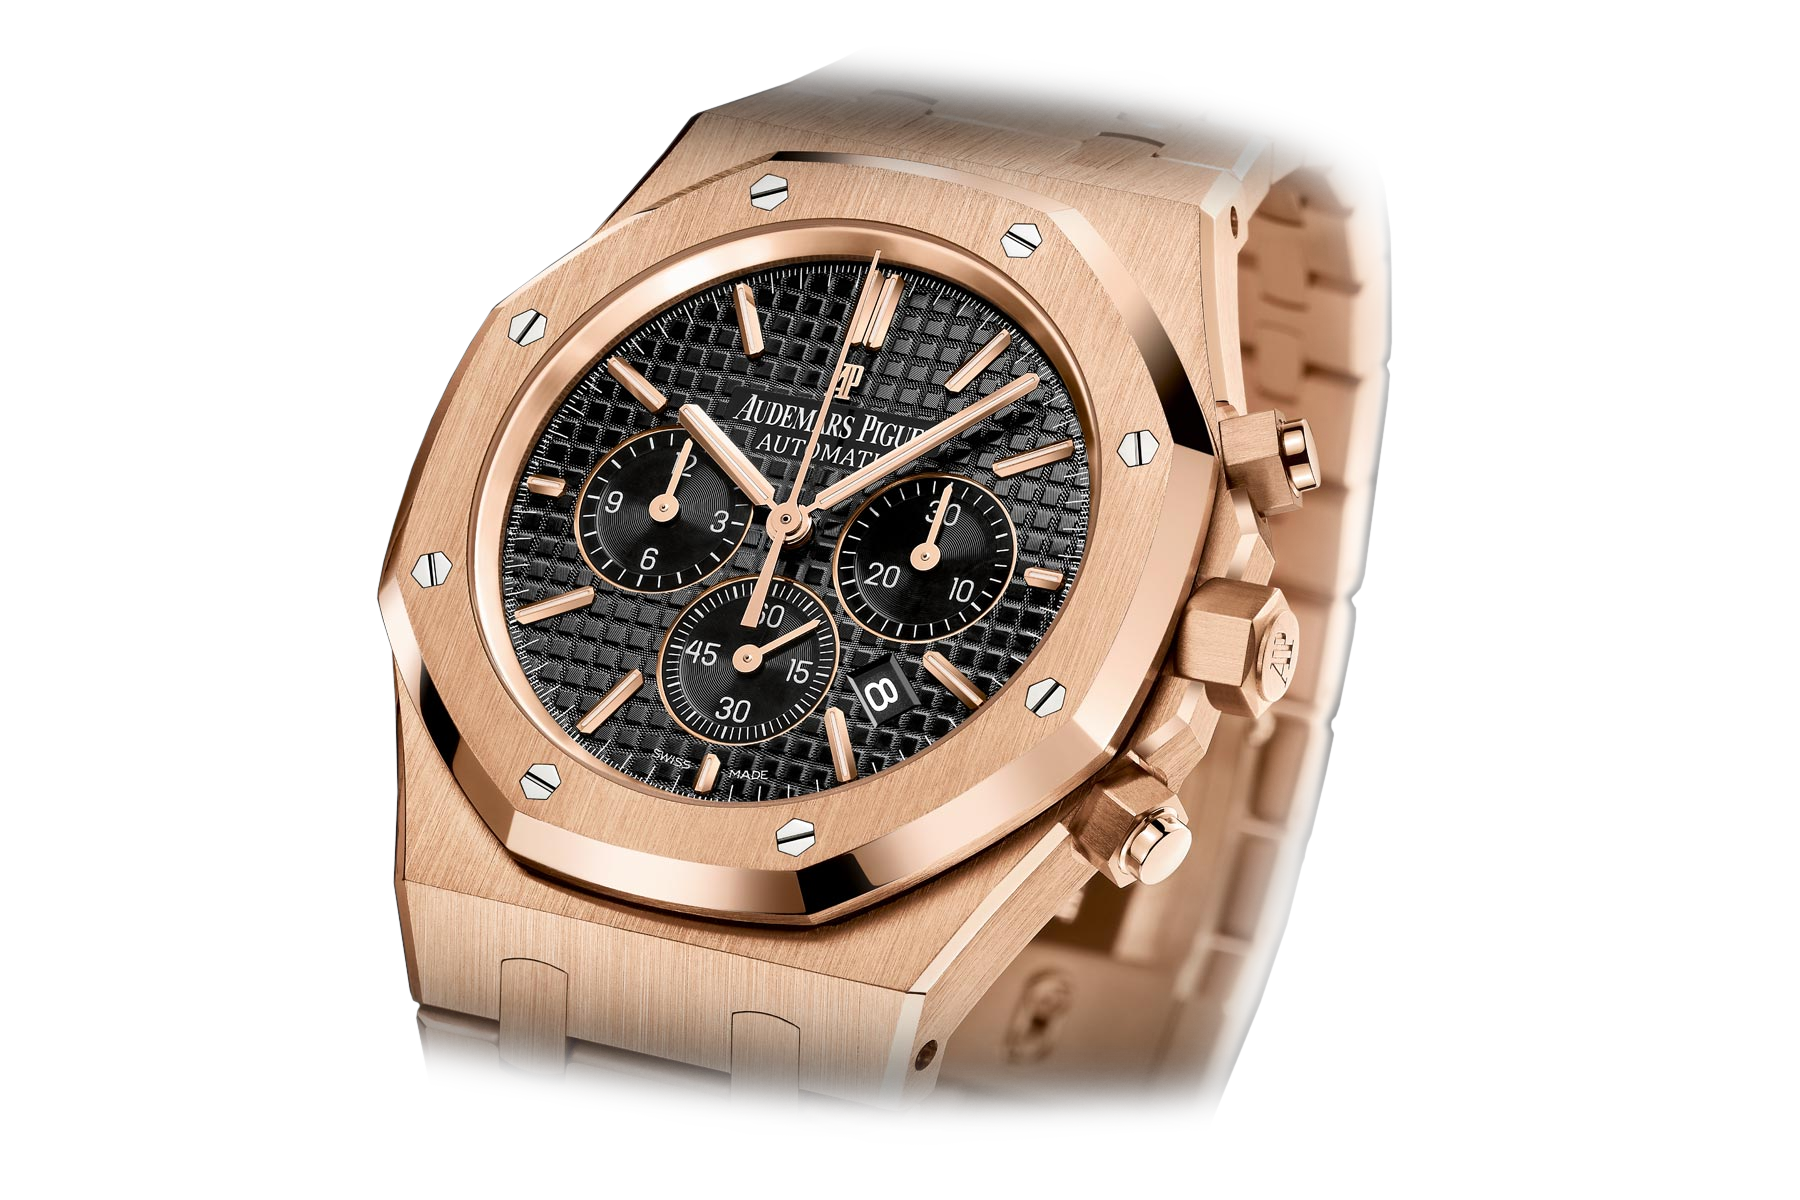 Audemars Piguet Chronograph 26320OR.OO.1220OR.01